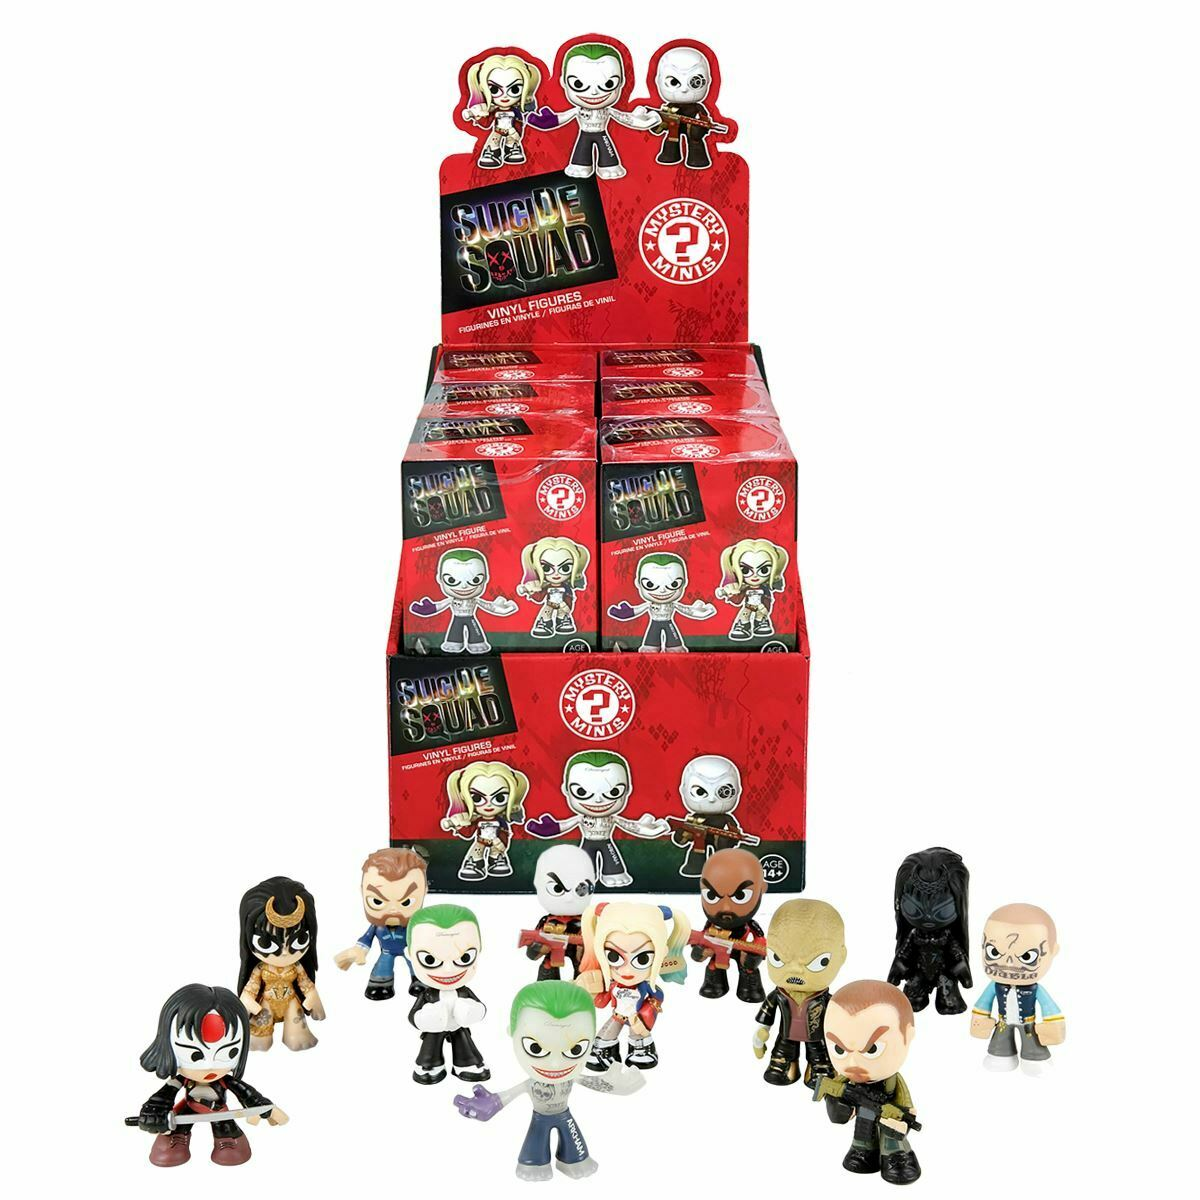 New 1 3 5 10 Or 12 Suicide Squad Mystery Minis Blind Box Vinyl Figures Official